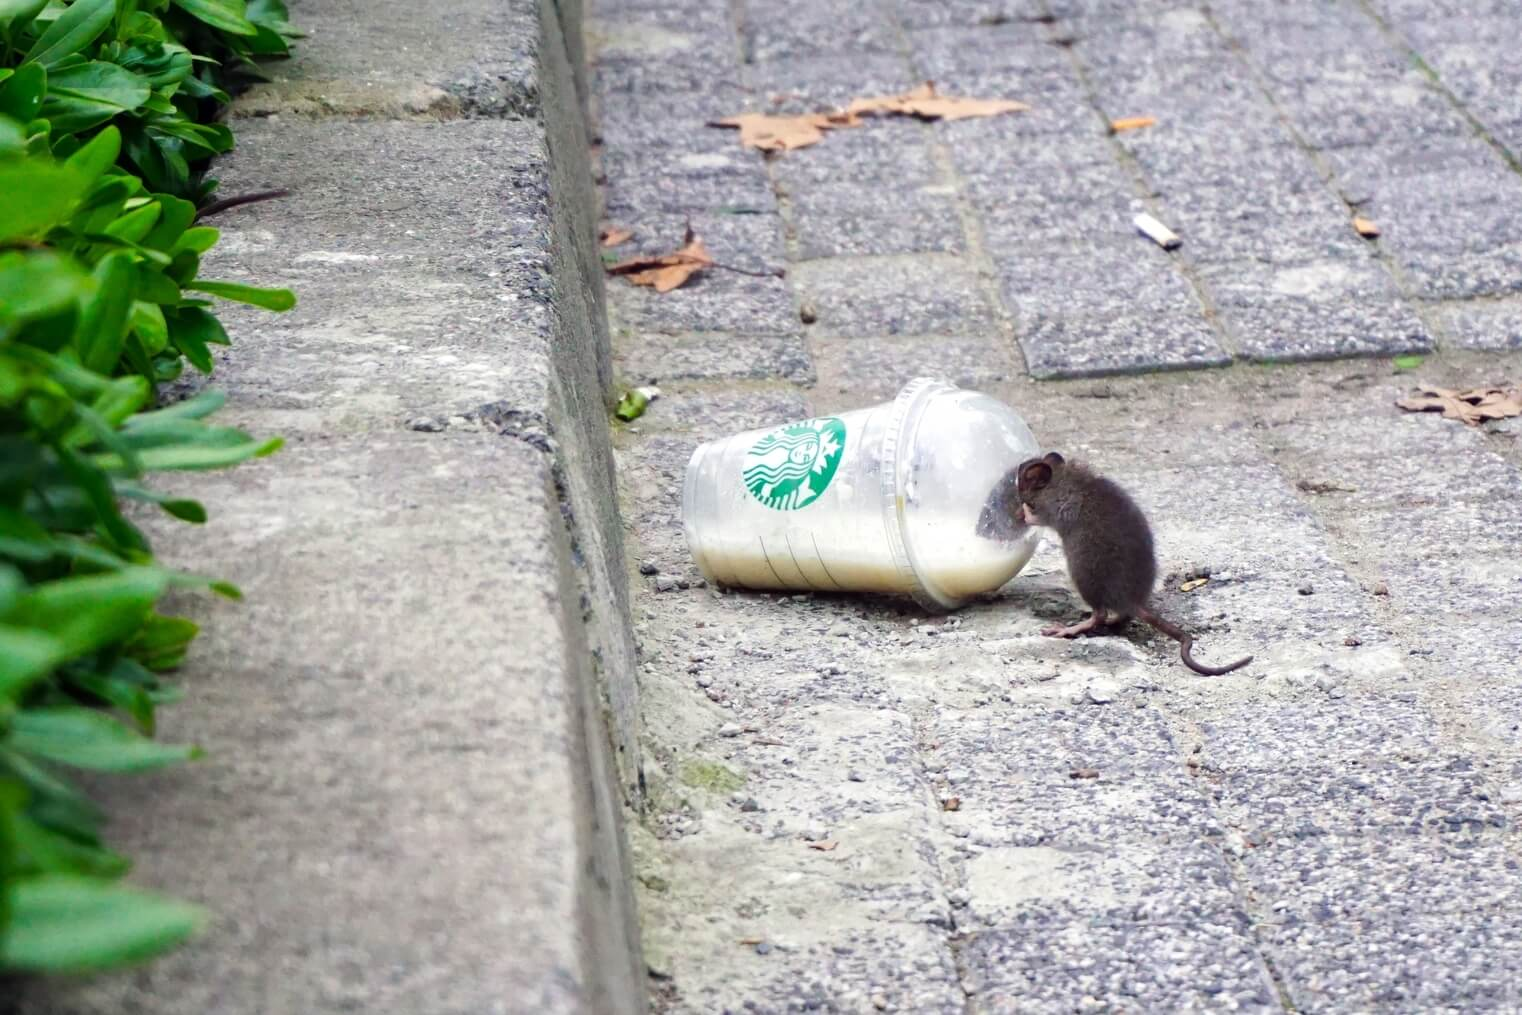 Rat in a starbucks cup